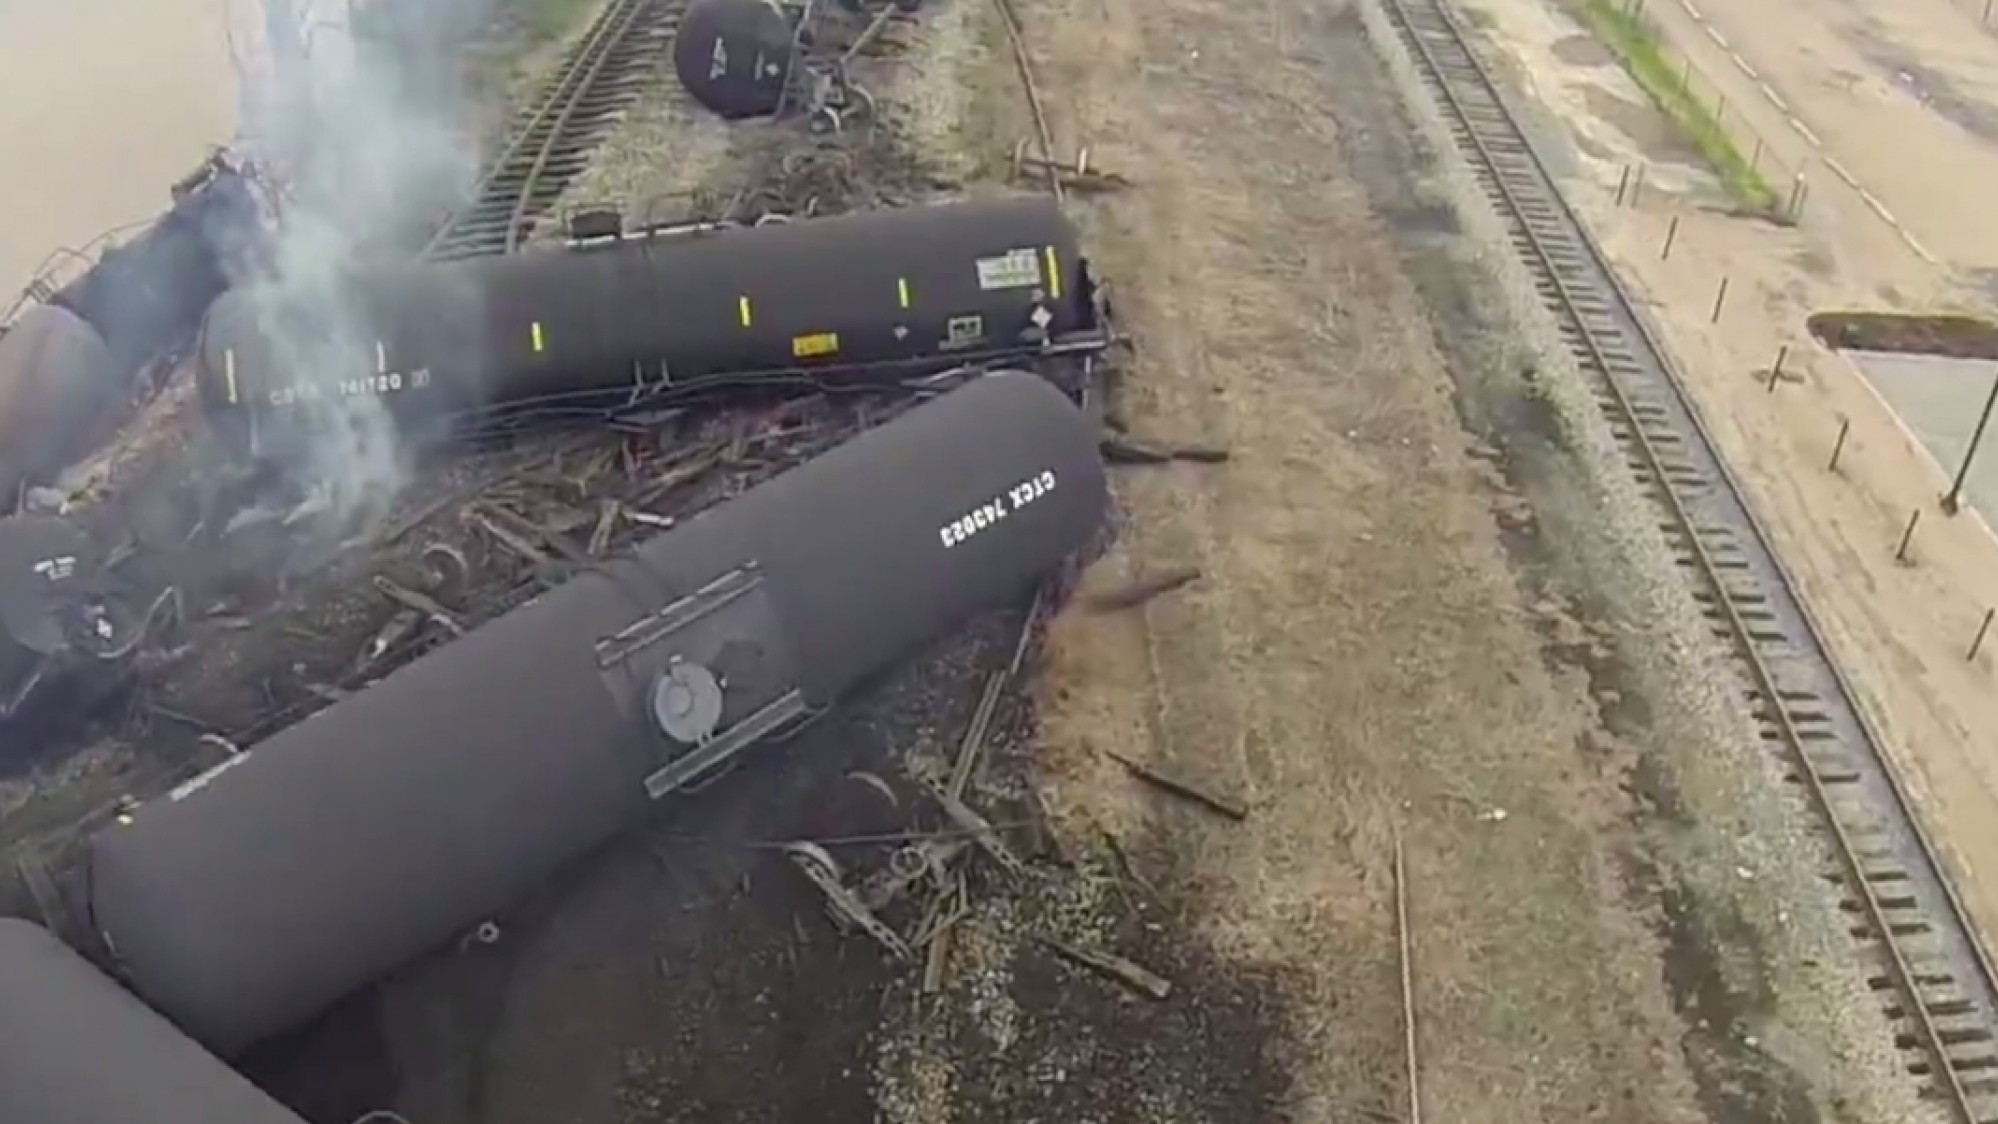 A Drone's Eye View of the Latest Oil Train Explosion